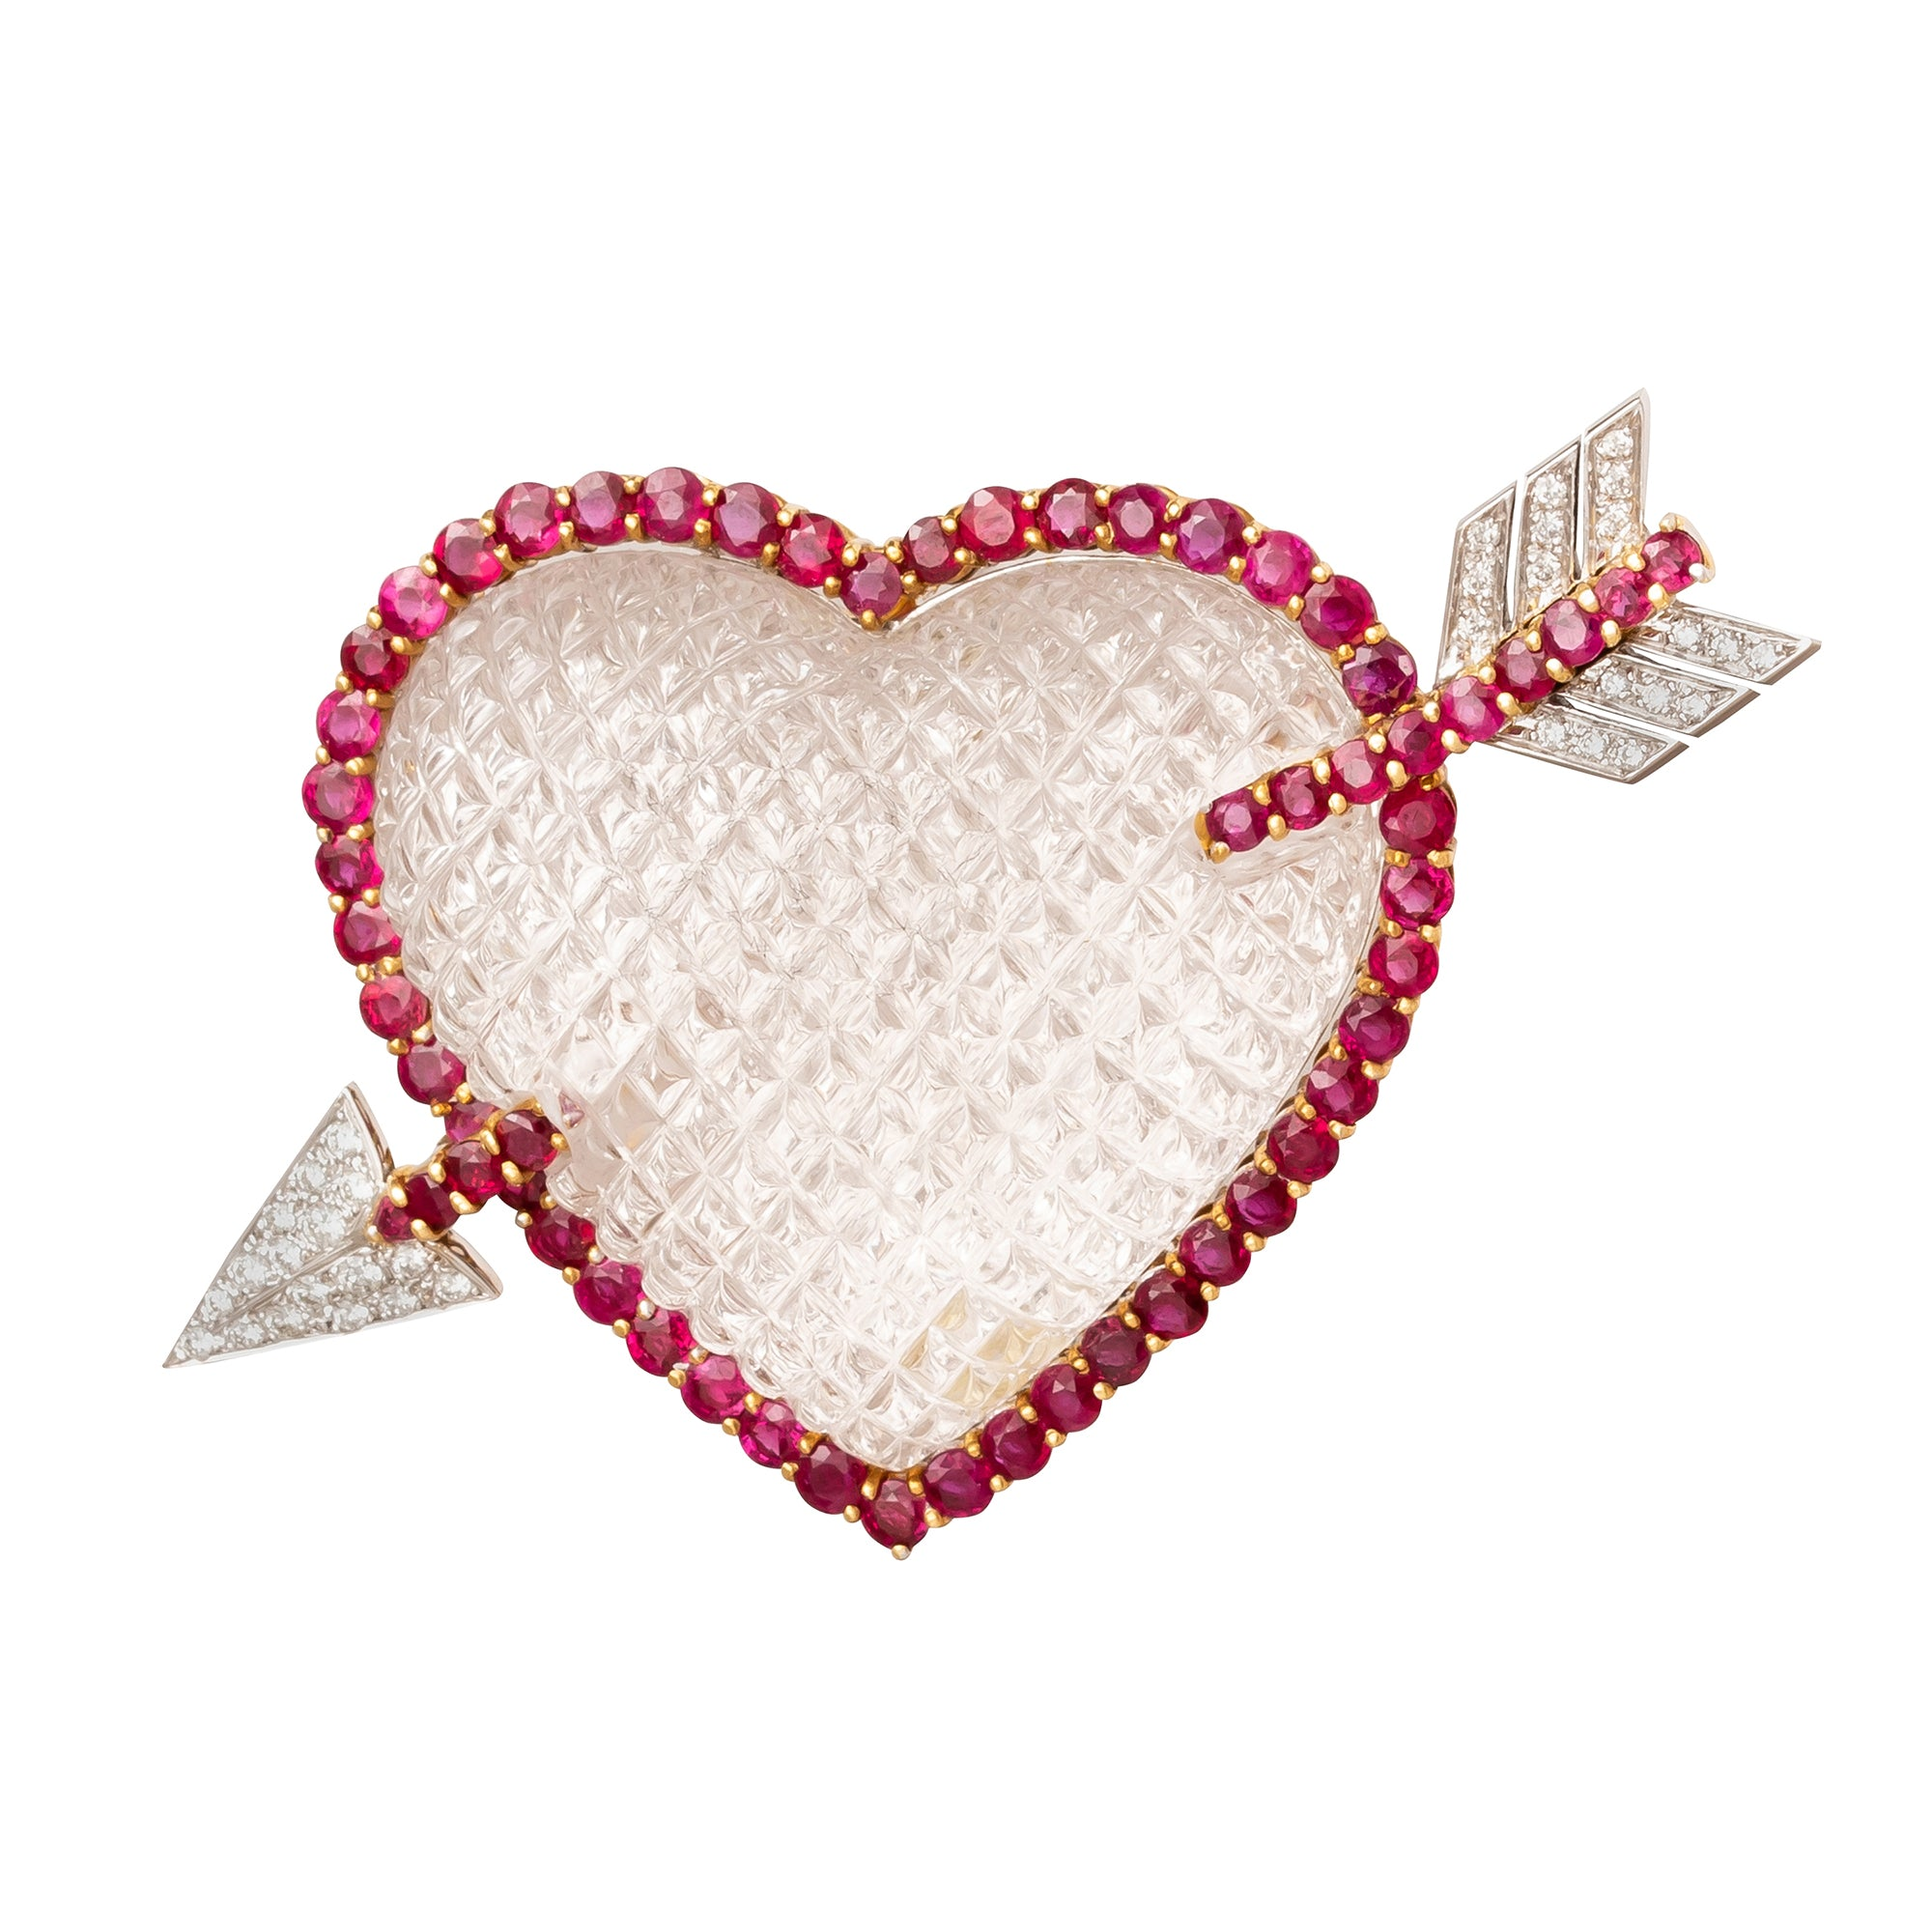 Sabbadini Heart Brooch - Antique & Vintage Jewelry - Charms & Pendants | Broken English Jewelry